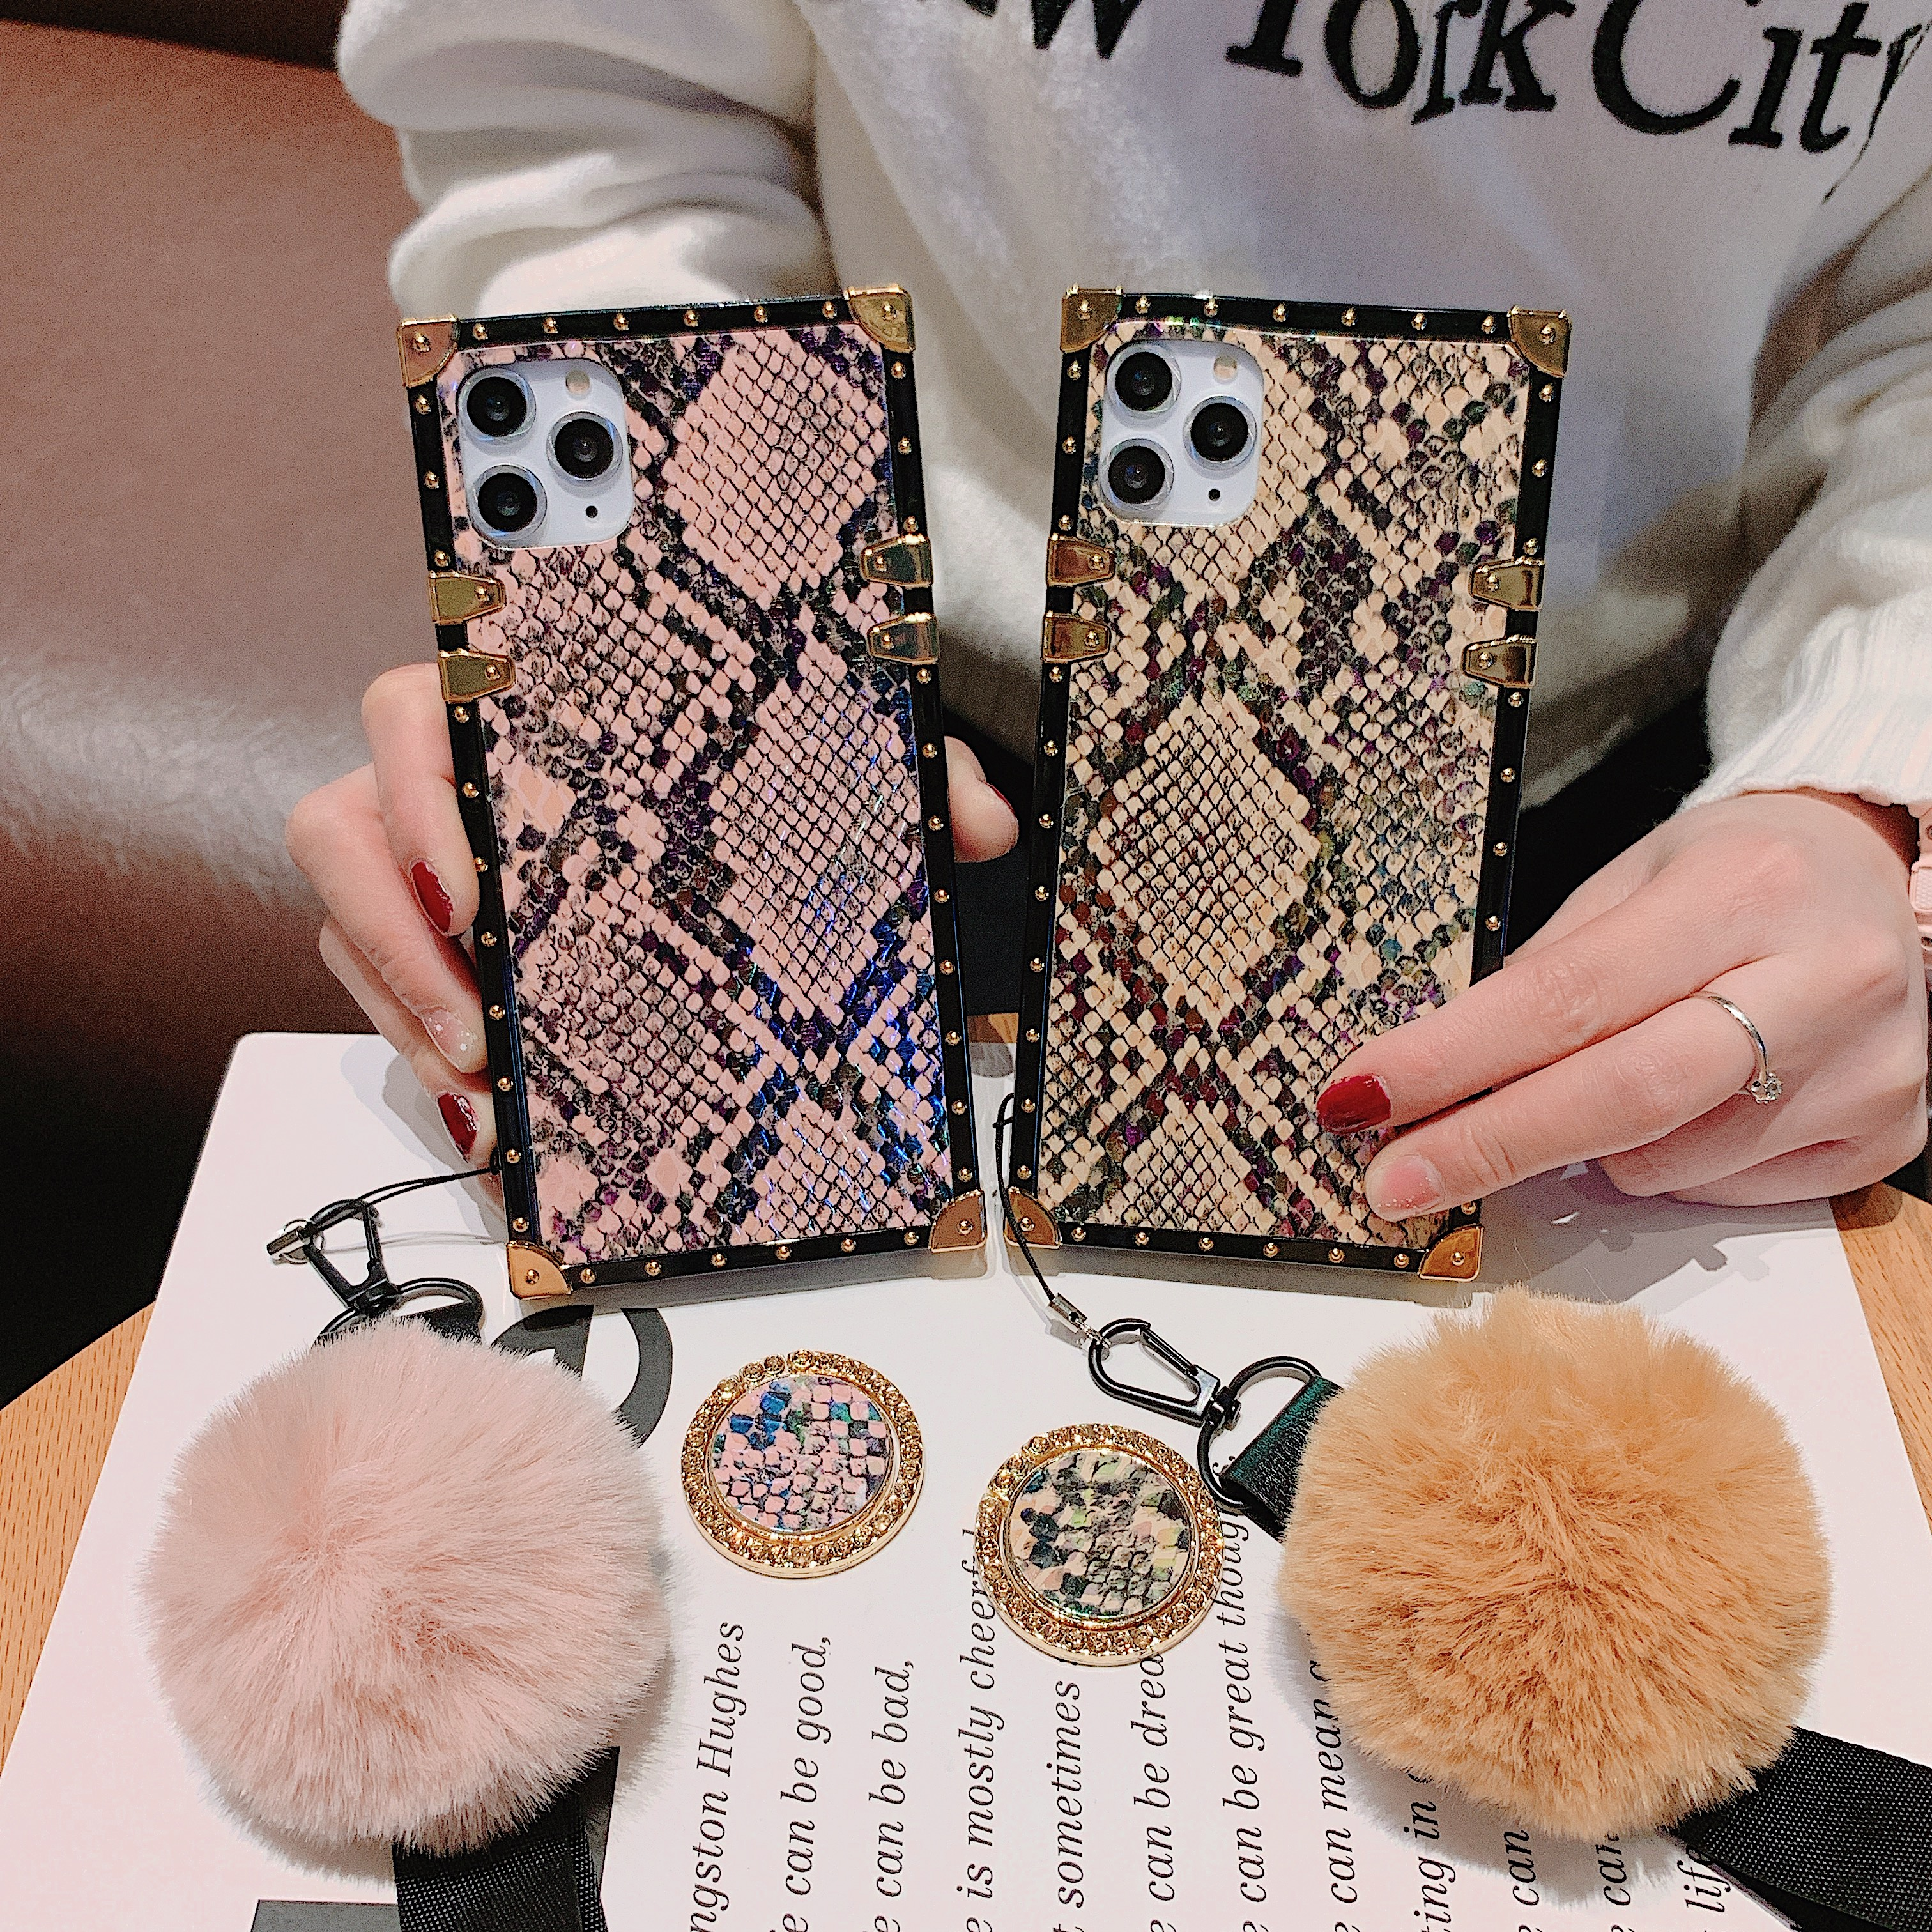 Square Silicone Snakeskin Fur Ball <font><b>Diamond</b></font> Holder Strap Phone <font><b>Case</b></font> For <font><b>Huawei</b></font> <font><b>P20</b></font> P30 Pro Lite Nova 2S 3 i 3E 4 4E 5 6 5pro 5I image